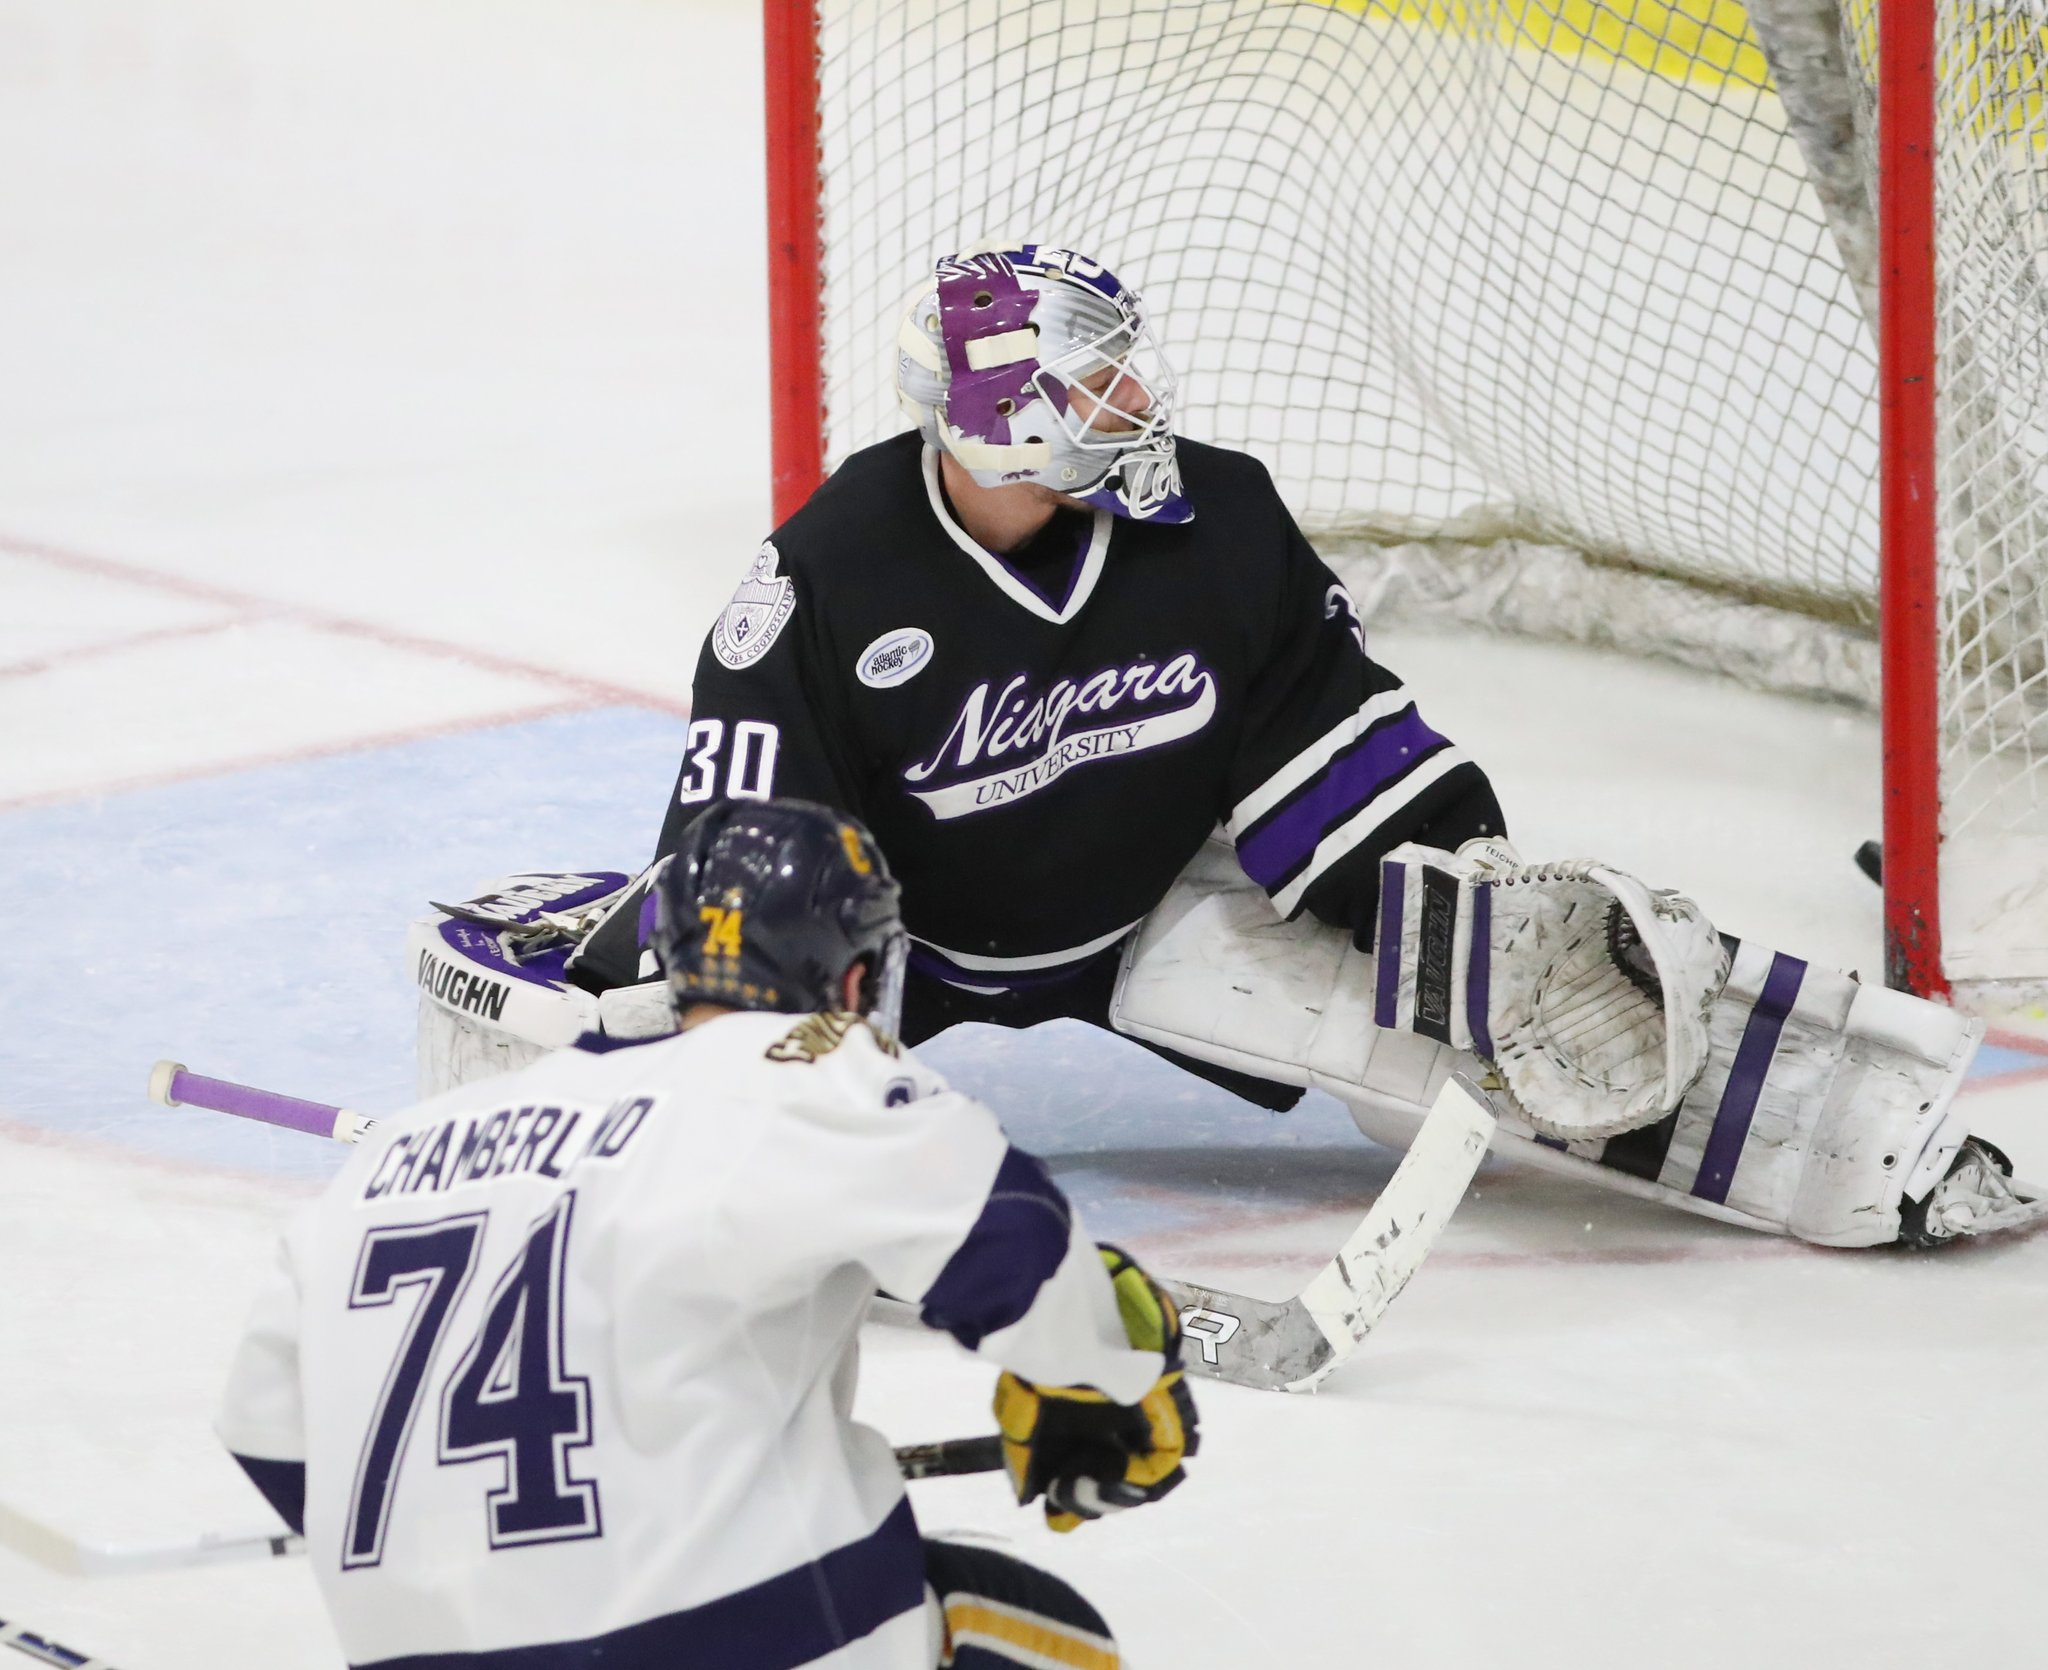 New coaches can bring a new spirit to the Canisius-Niagara hockey rivalry. (James P. McCoy/Buffalo News)